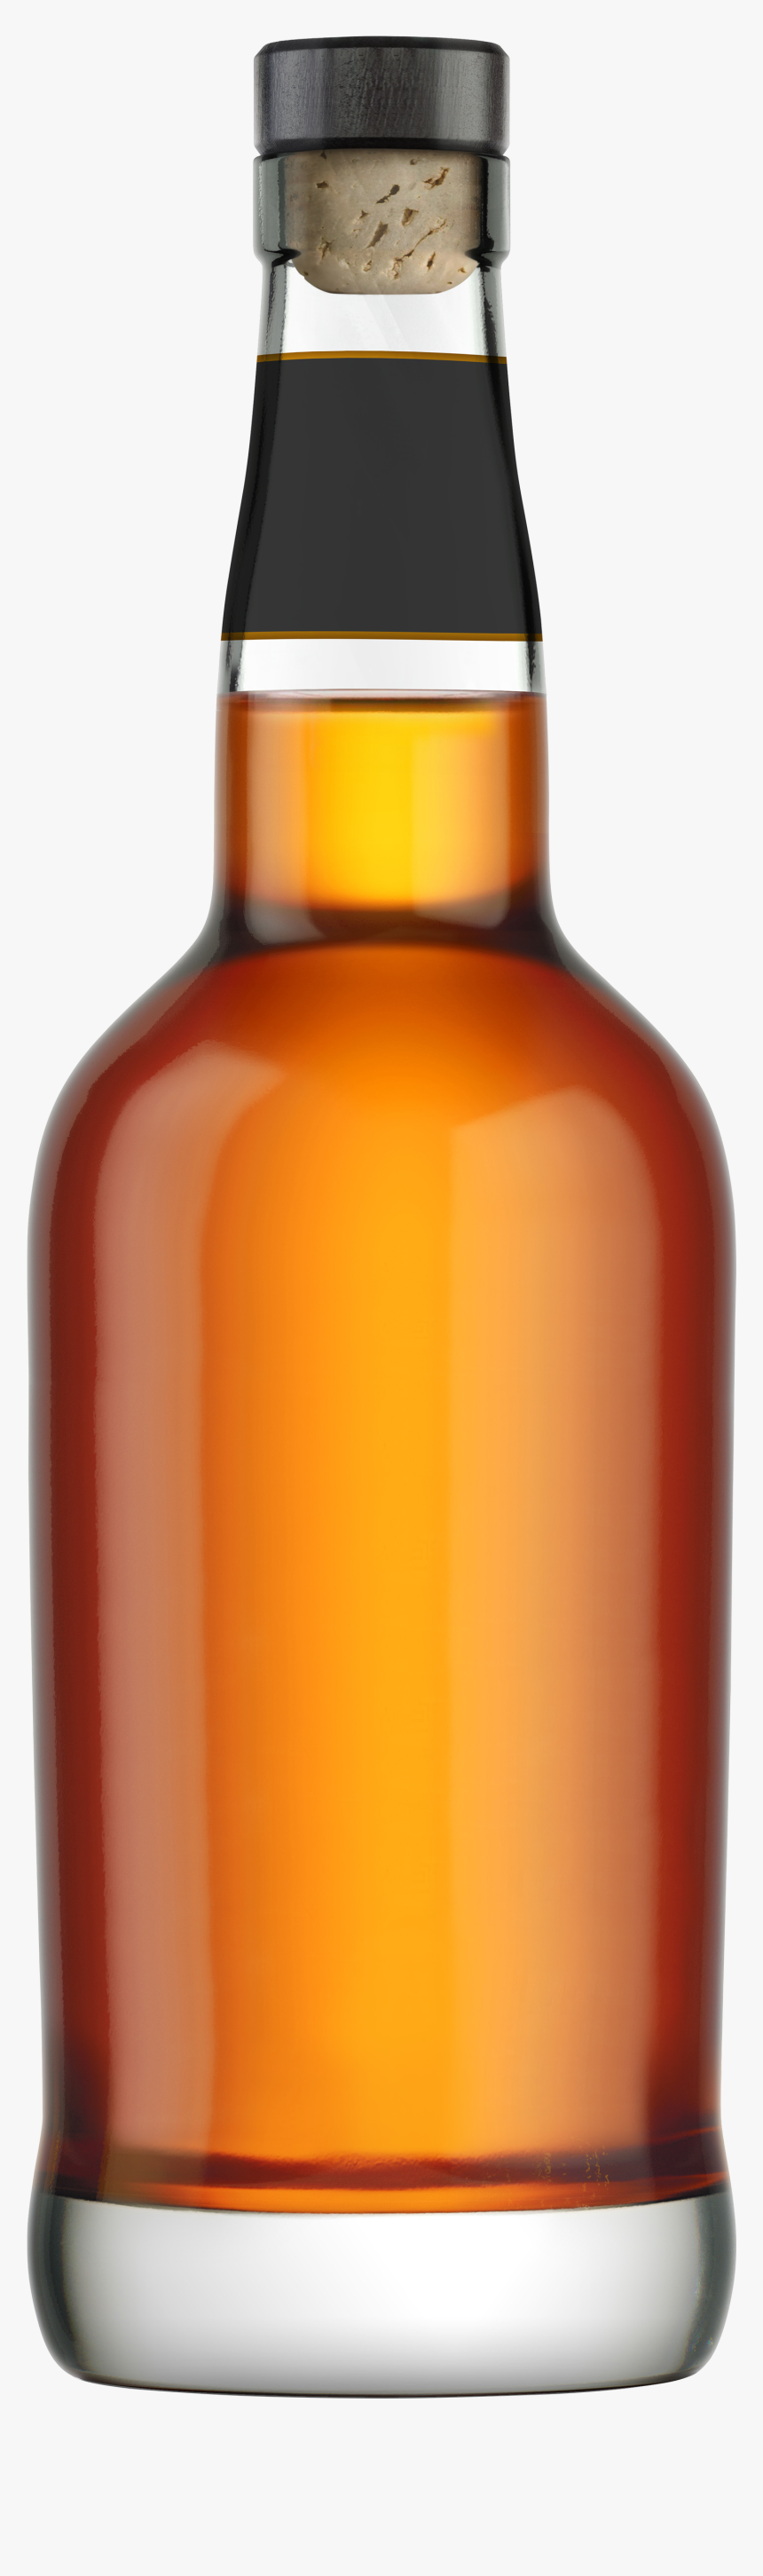 Whiskey Bottle Png Clip Art - Whiskey Bottle Png, Transparent Png, Free Download